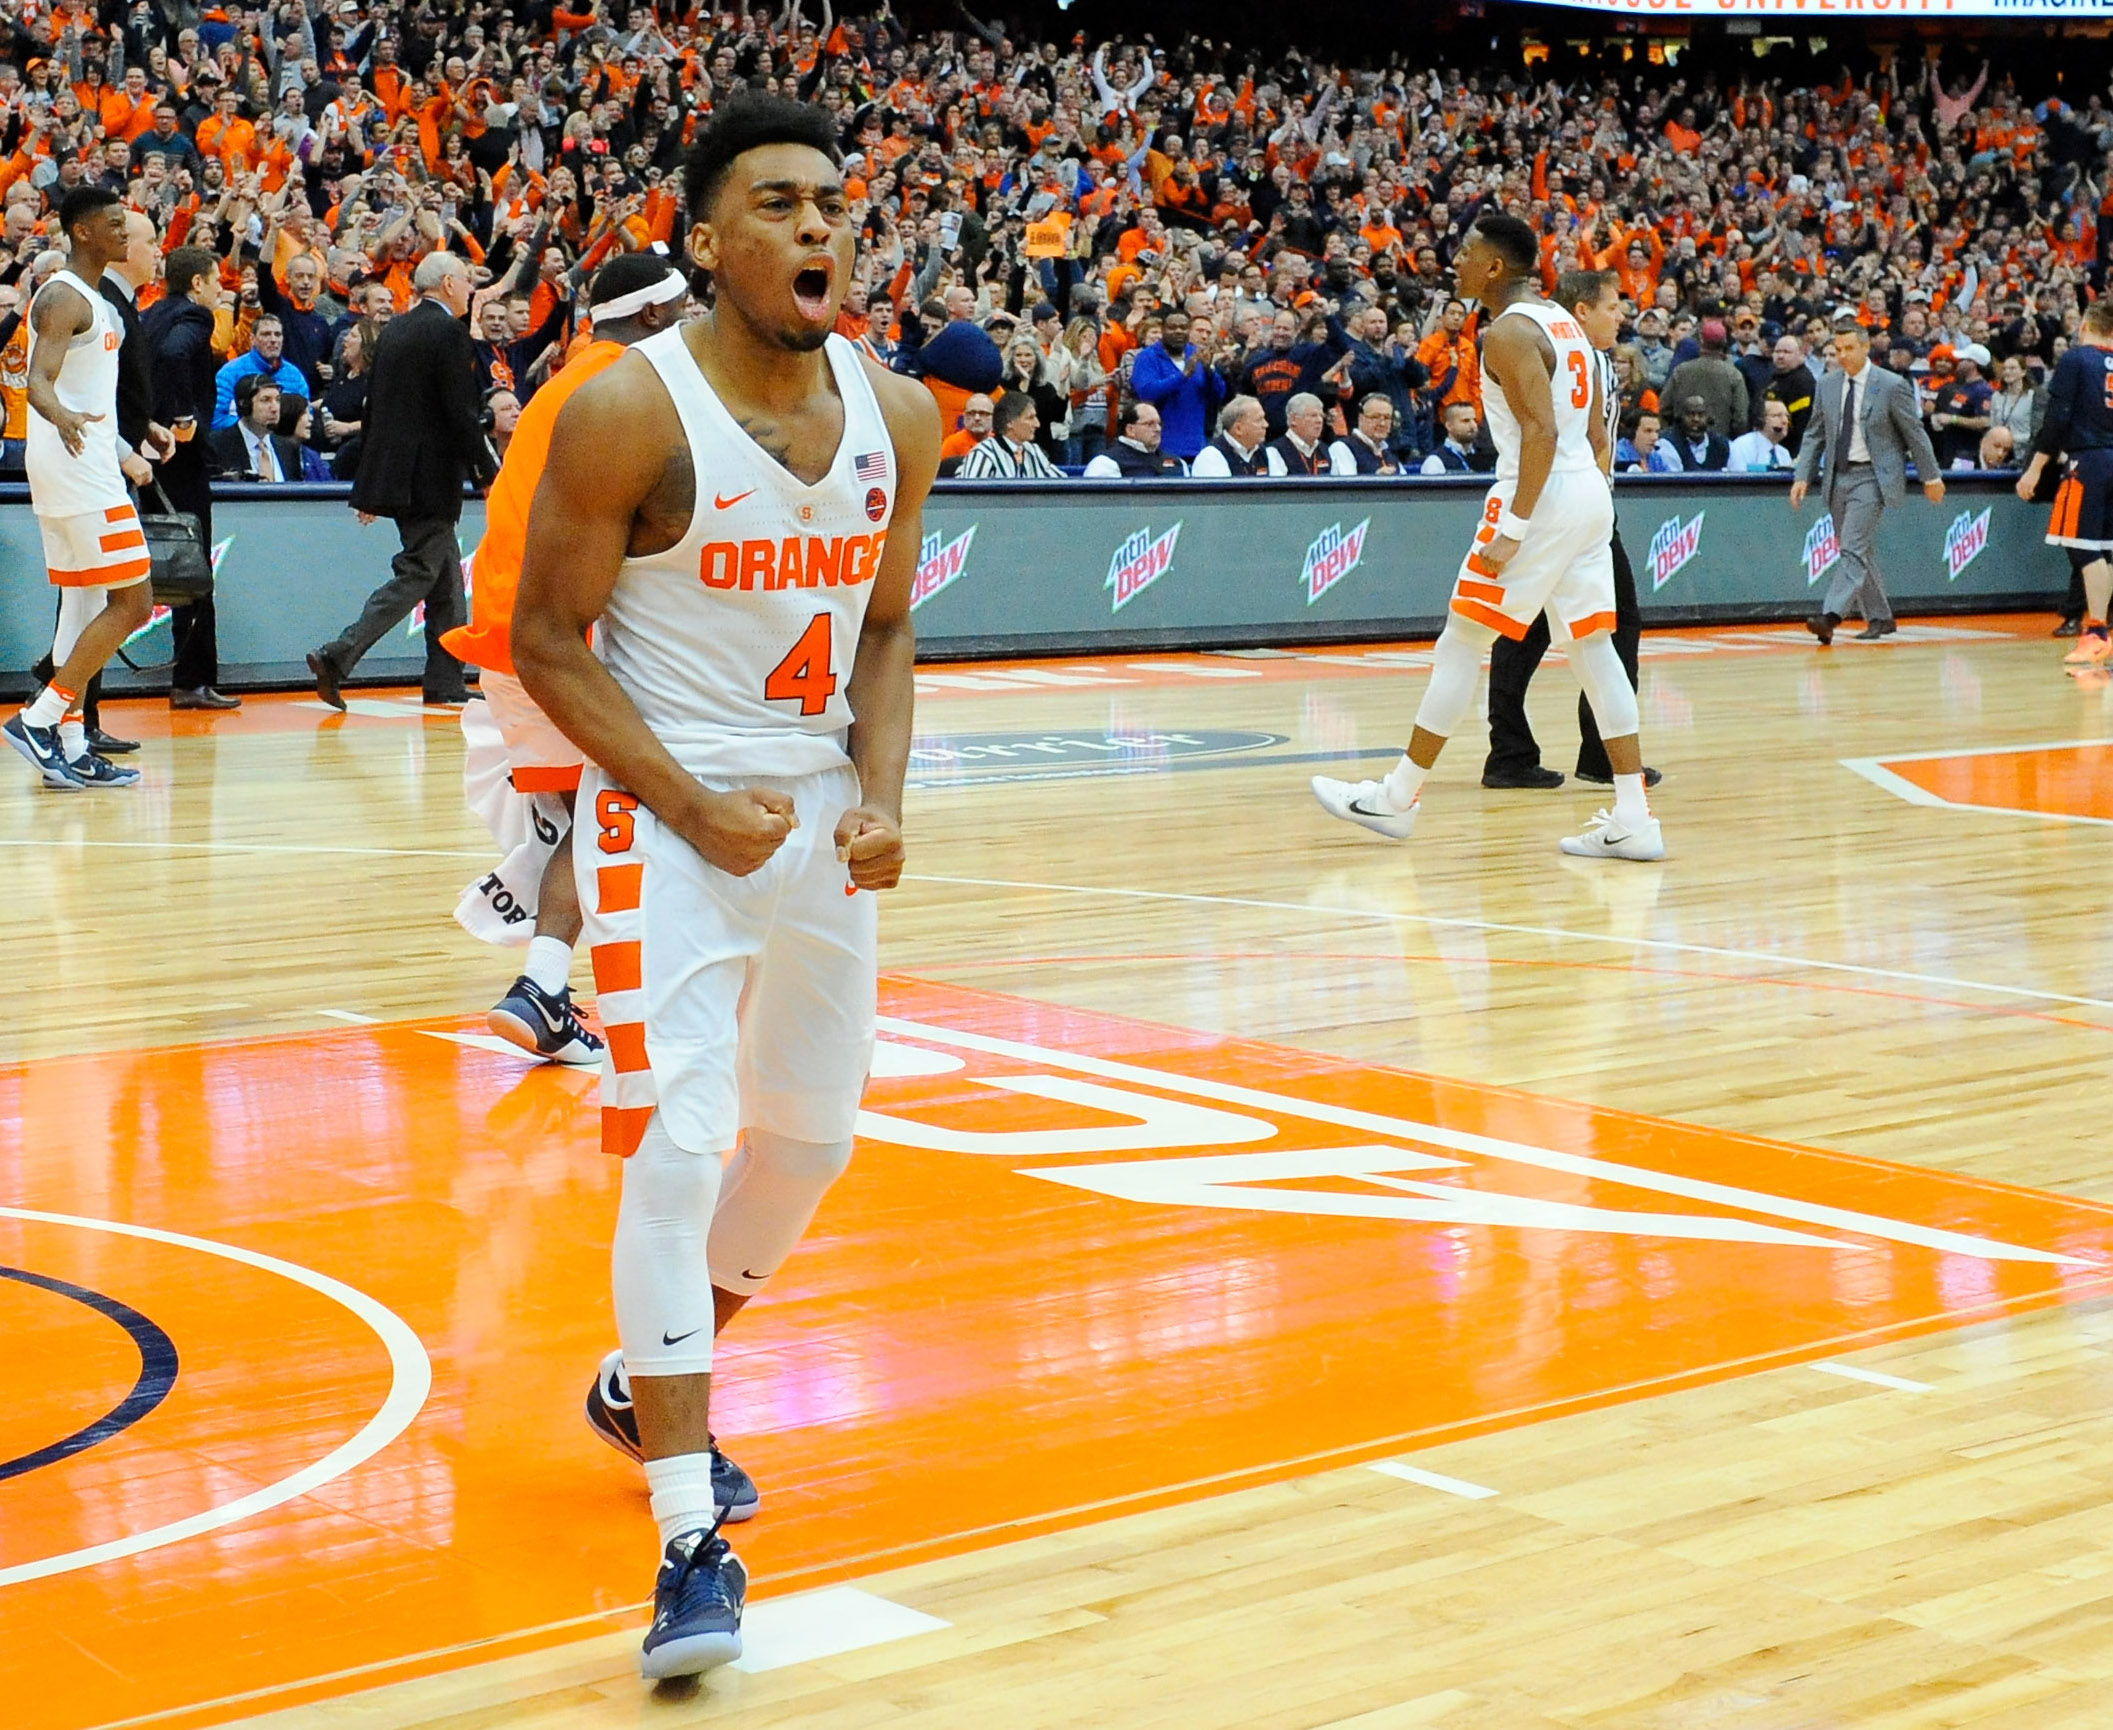 9857254-ncaa-basketball-virginia-at-syracuse